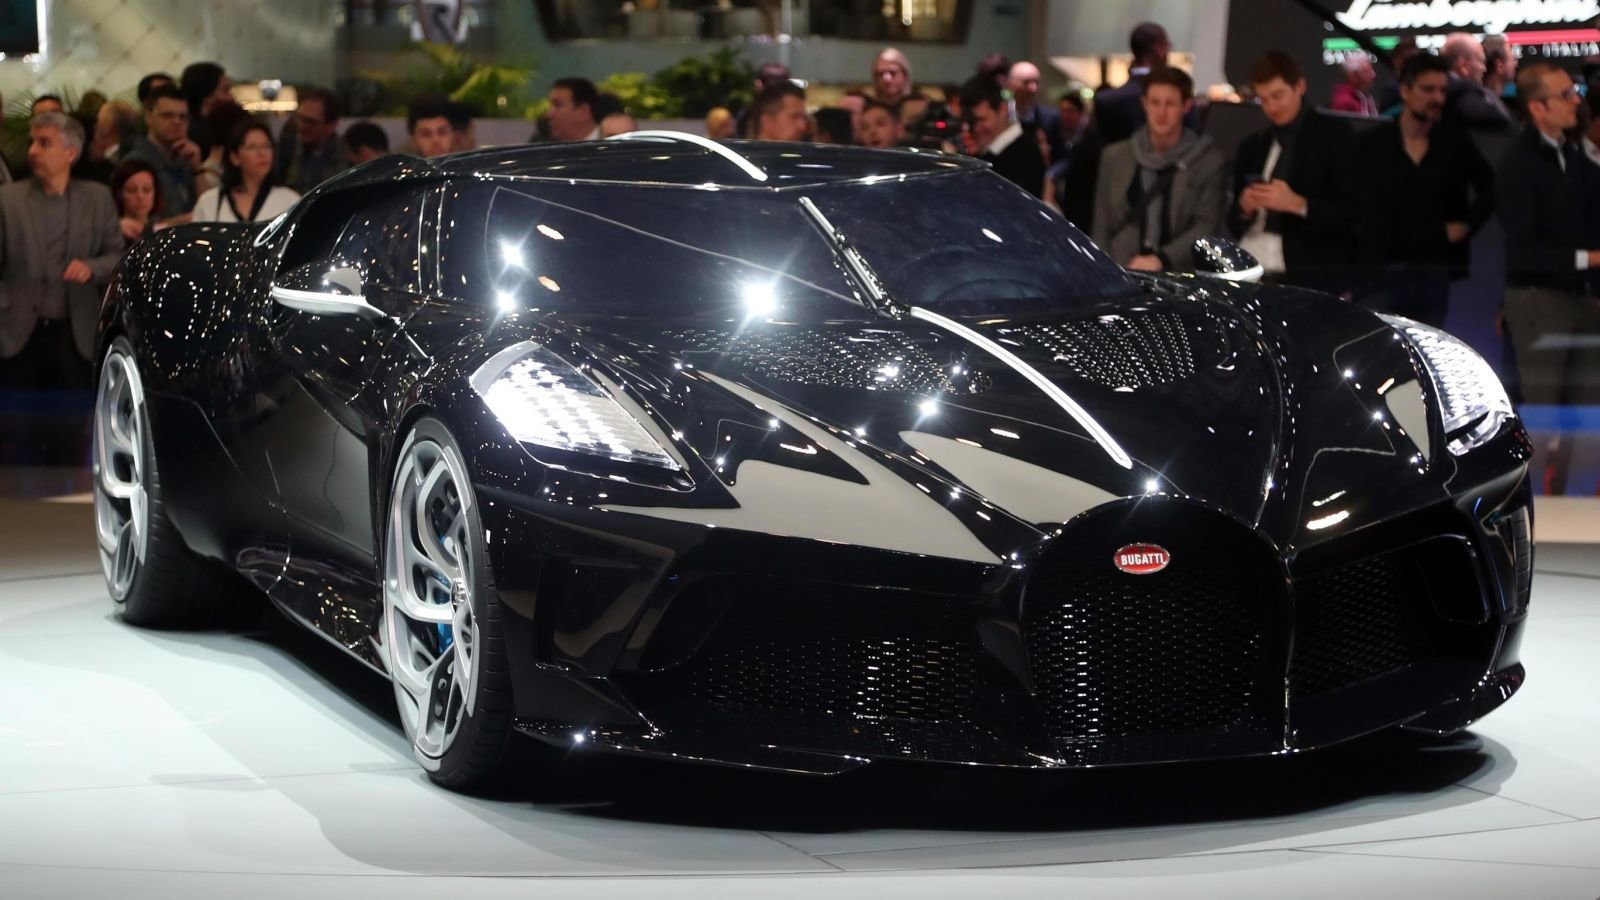 Latest This 12 5 Million Bugatti Is The Most Expensive New Car Ever Free Download